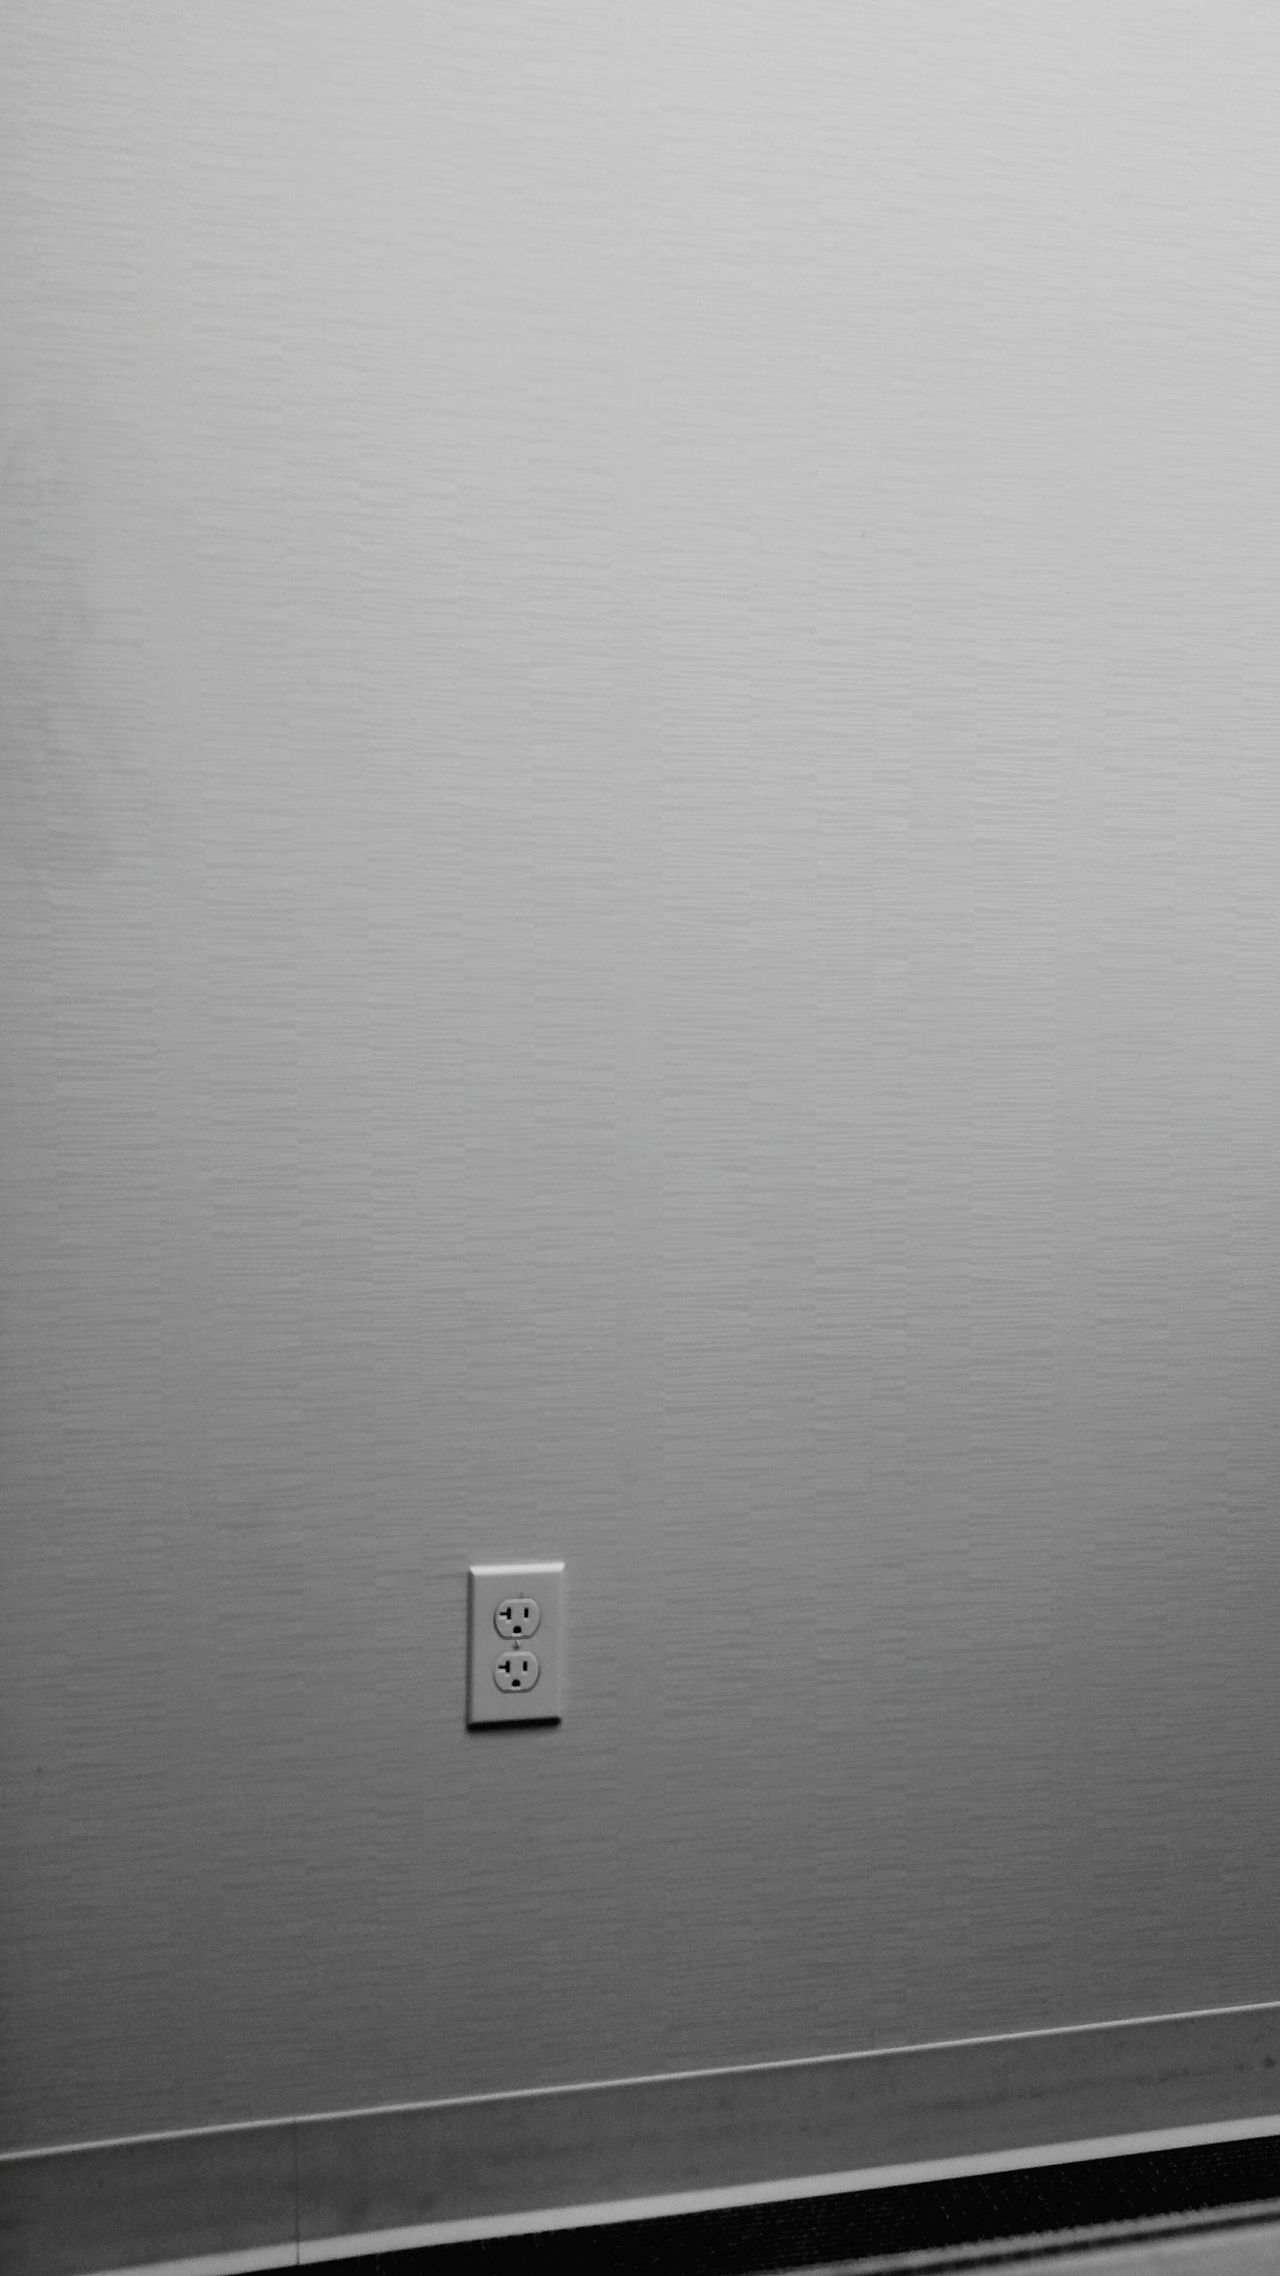 Black&white Black And White Photography Wall Outlet Electrical Outlet